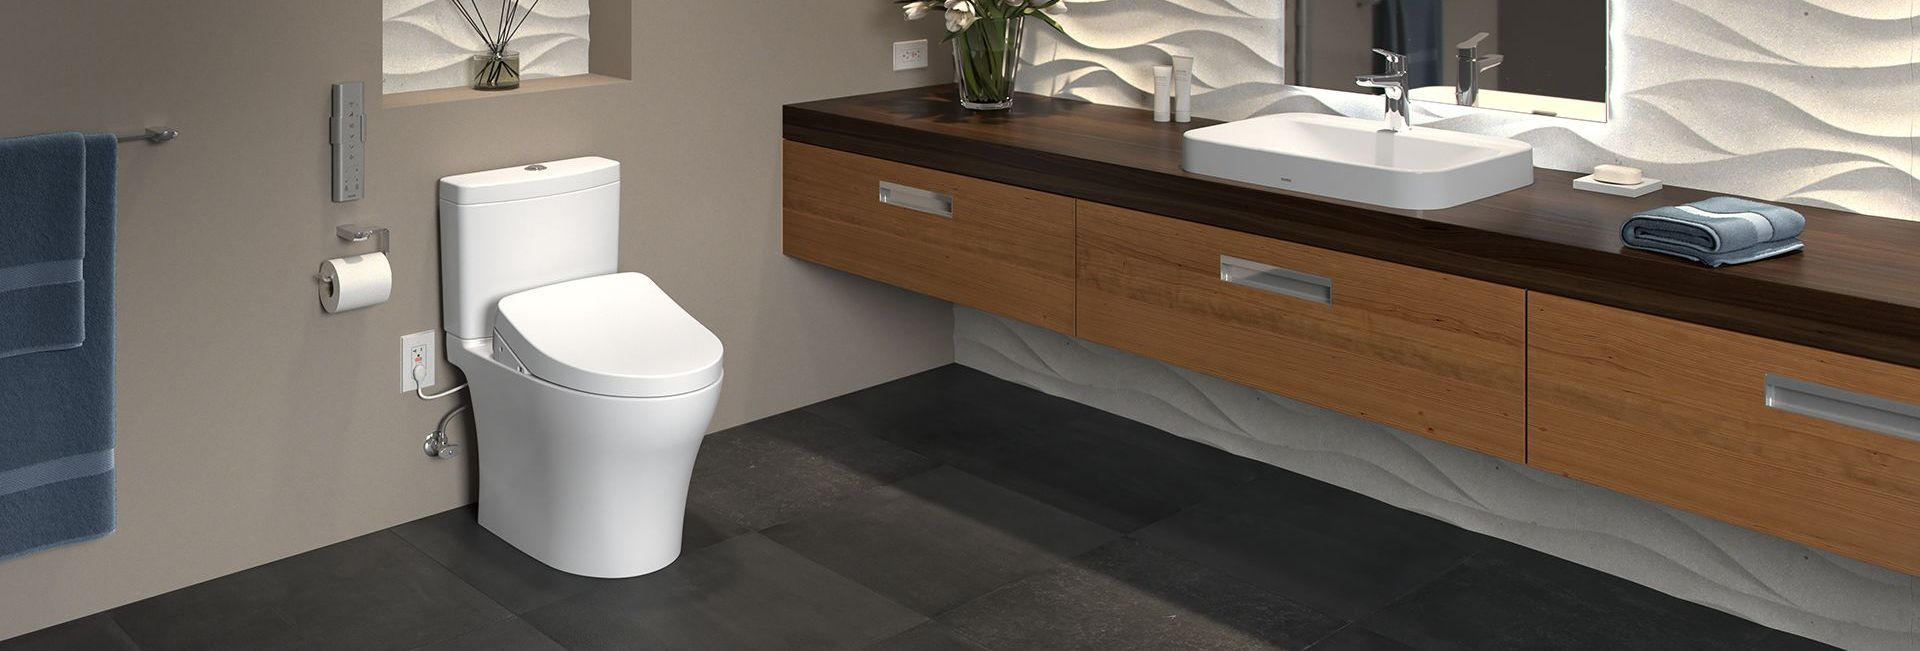 8 Best Toilets For Small Bathroom Jun